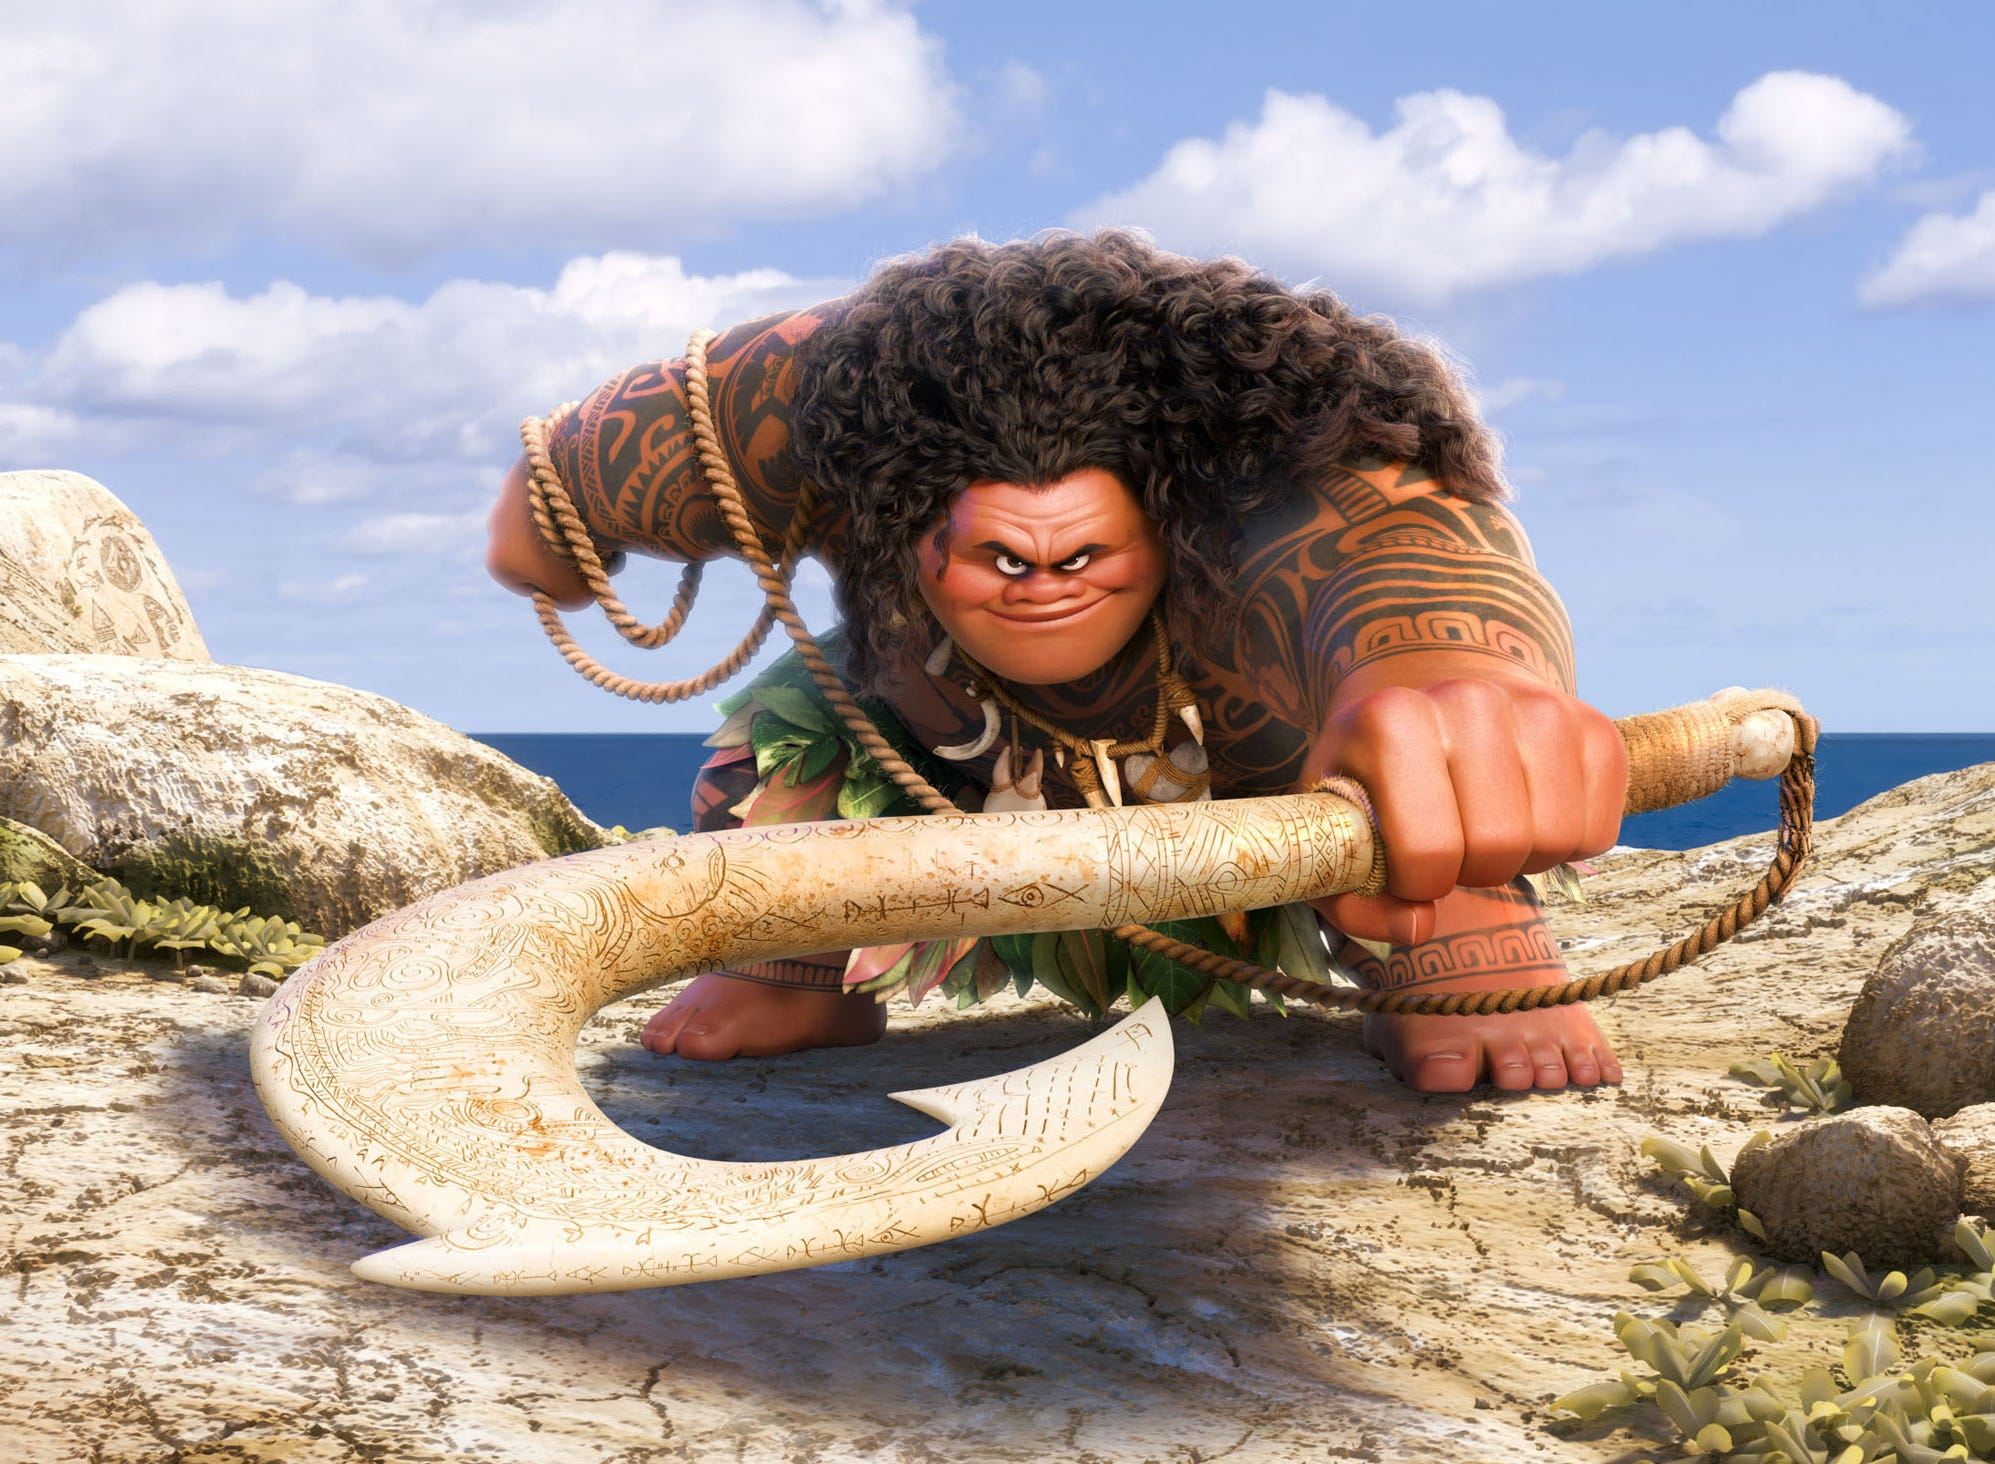 One of the keys to Maui (voiced by Dwayne Johnson) getting his mojo back is finding his magical fish hook.